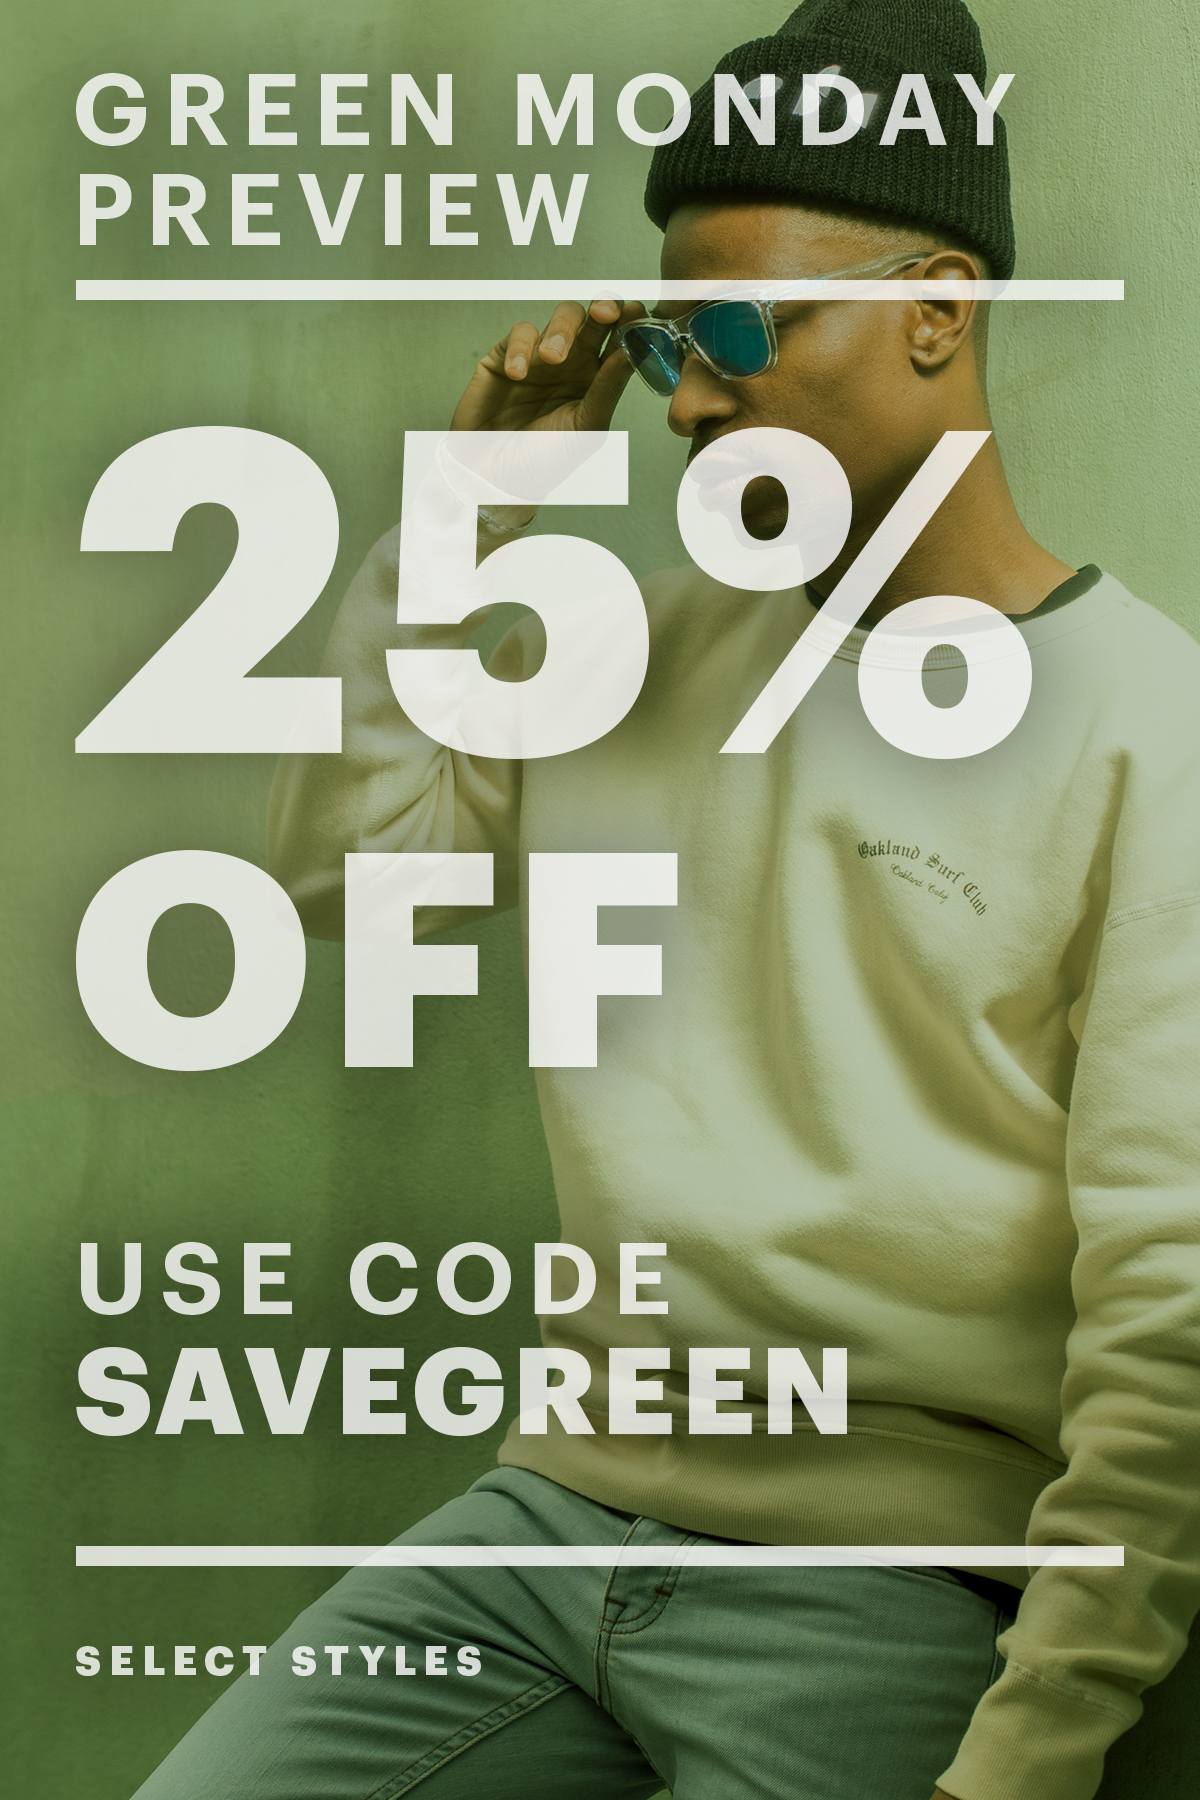 25% Off Green Monday Preview